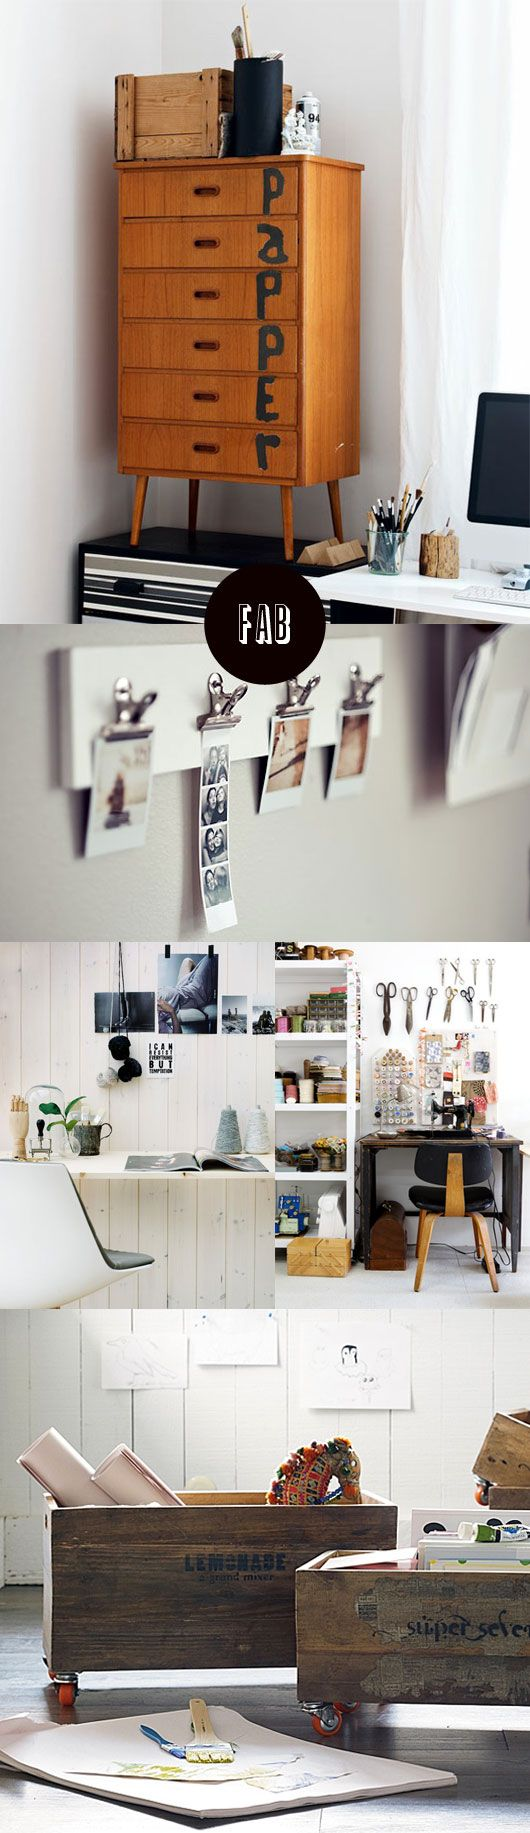 I wish to have this workspace.